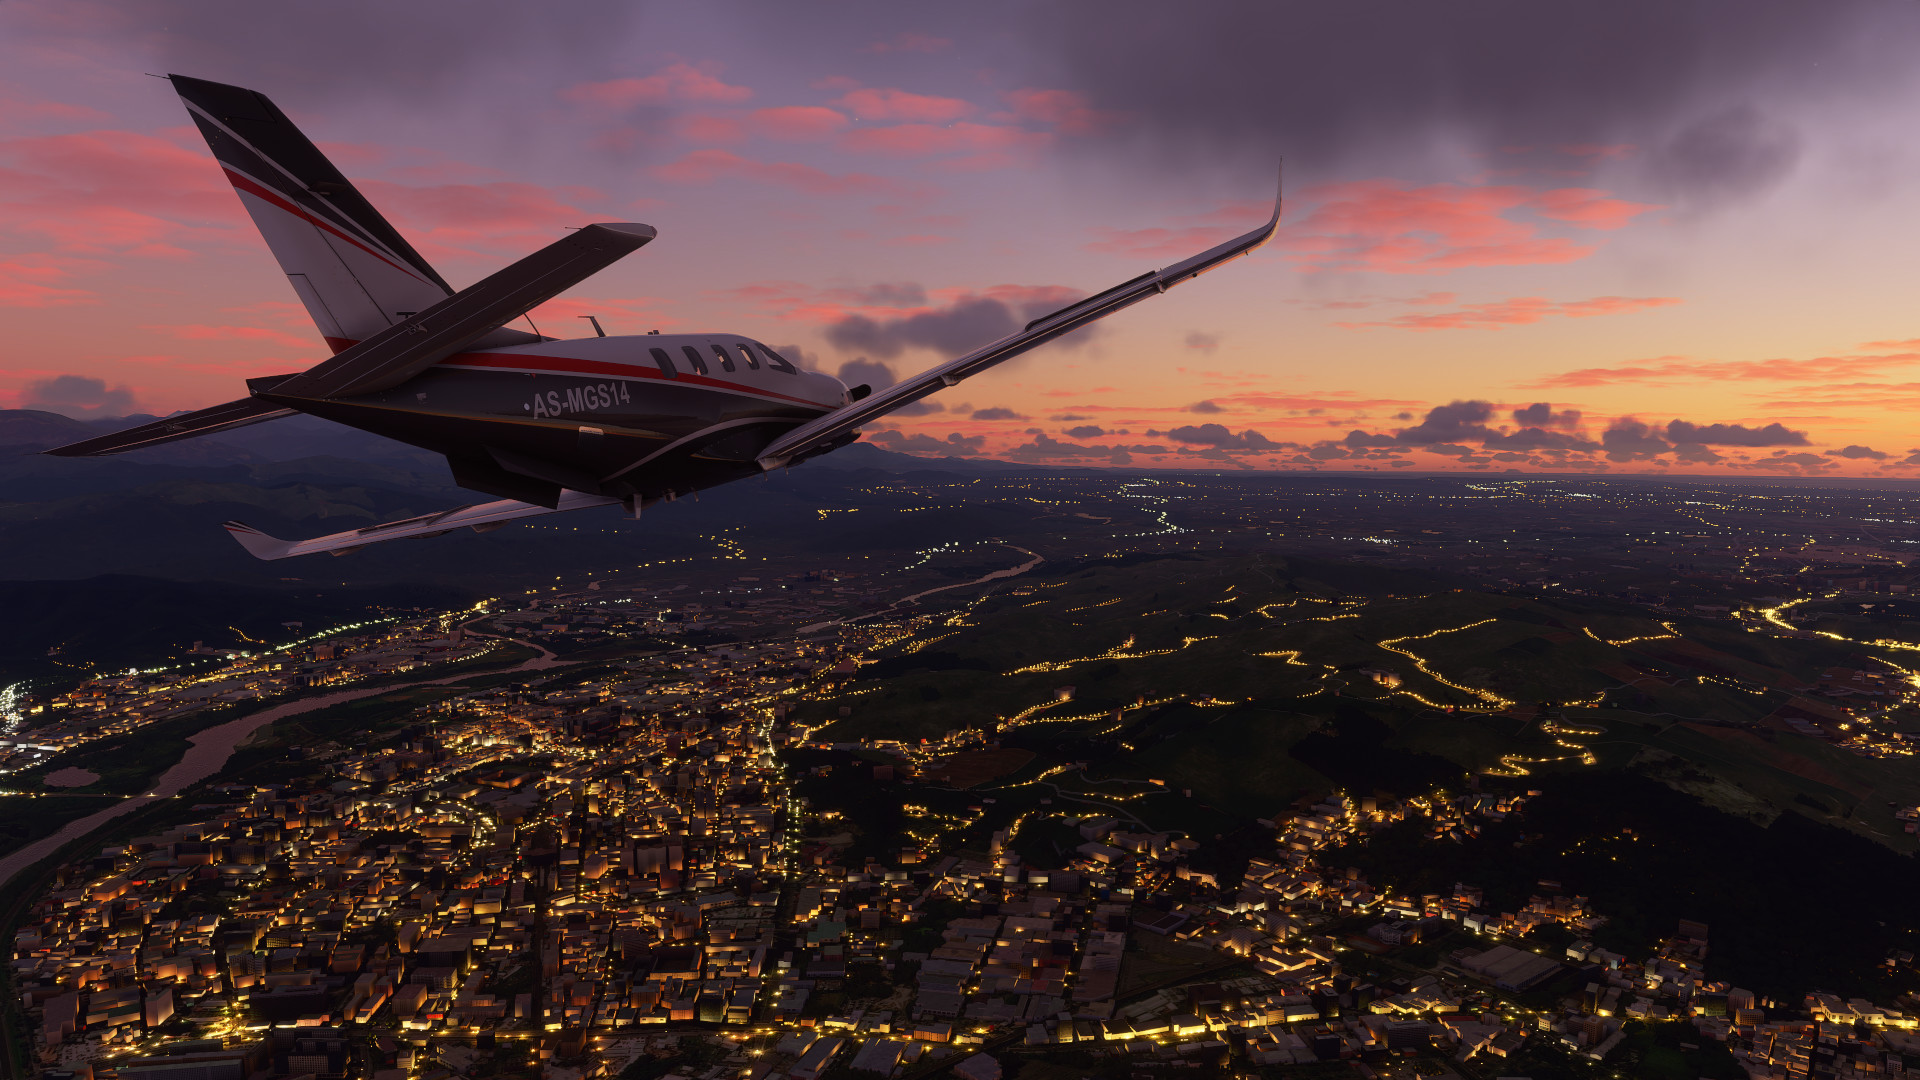 Feel what it's like flying an aircraft with Microsoft Flight Simulator